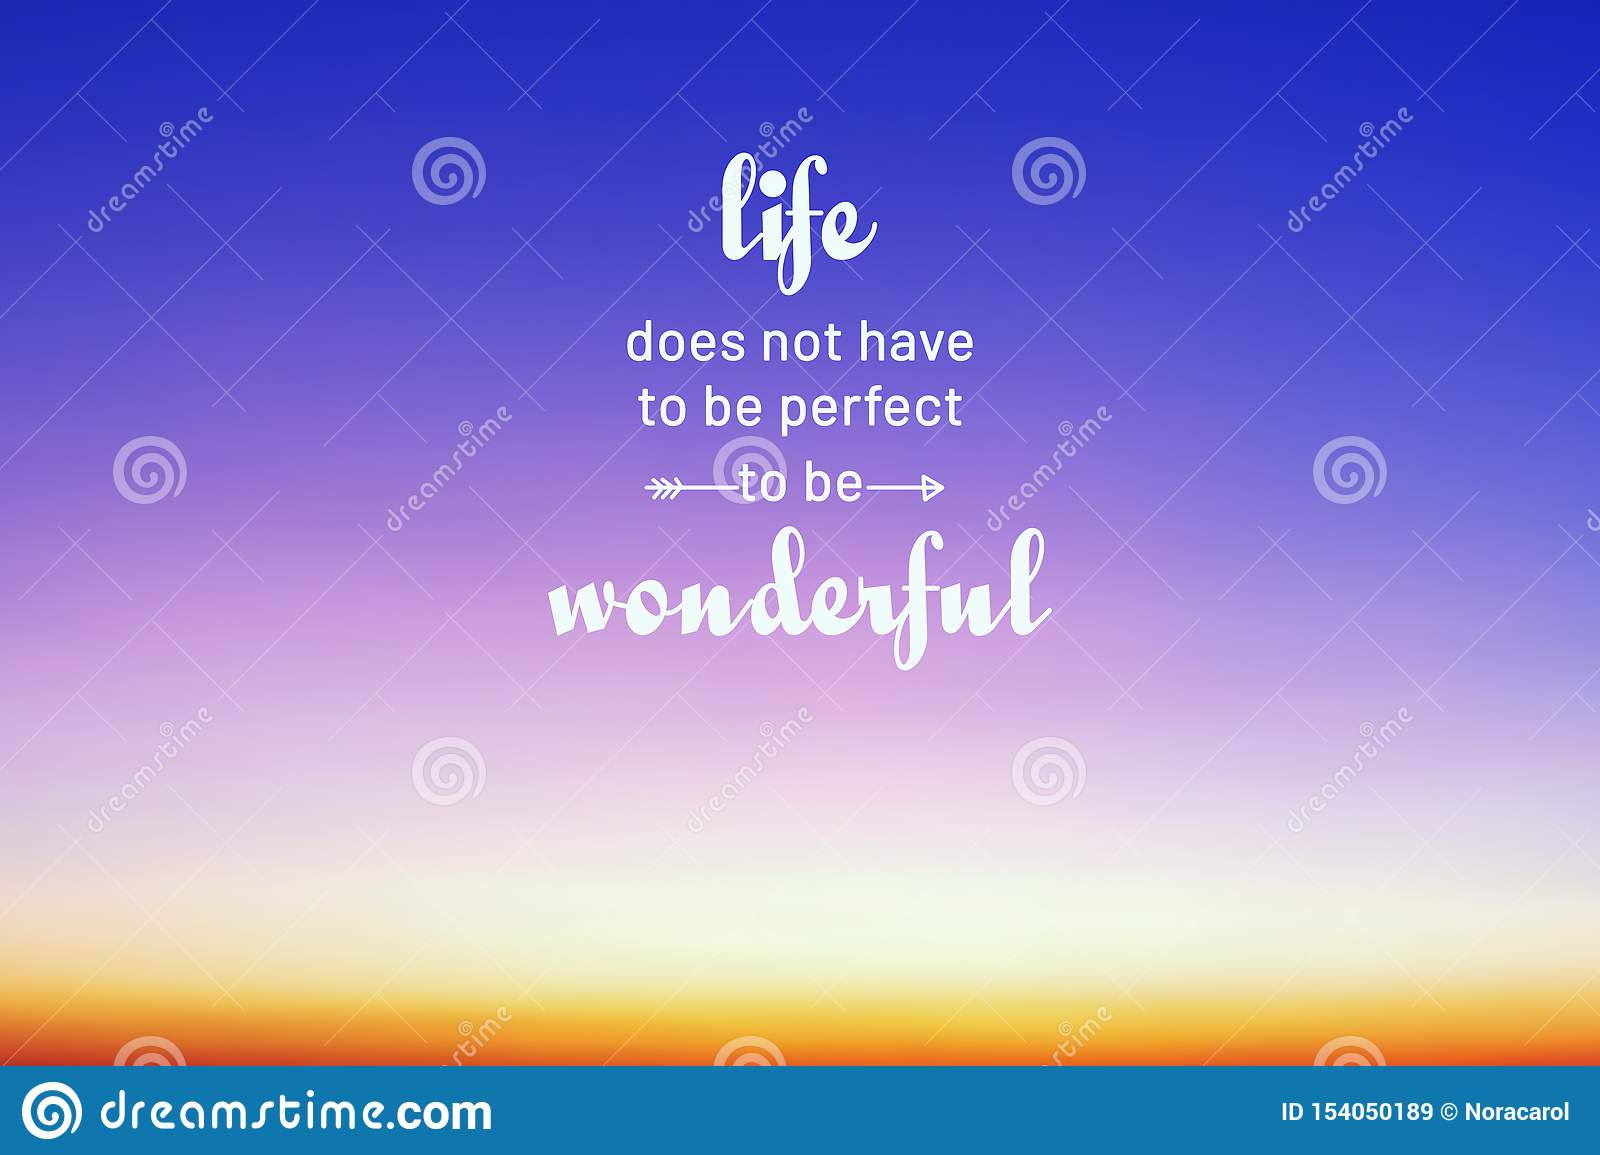 Life Quotes Life Does Not Have To Be Perfect To Be Wonderful Stock Image Image Of Background Life 154050189